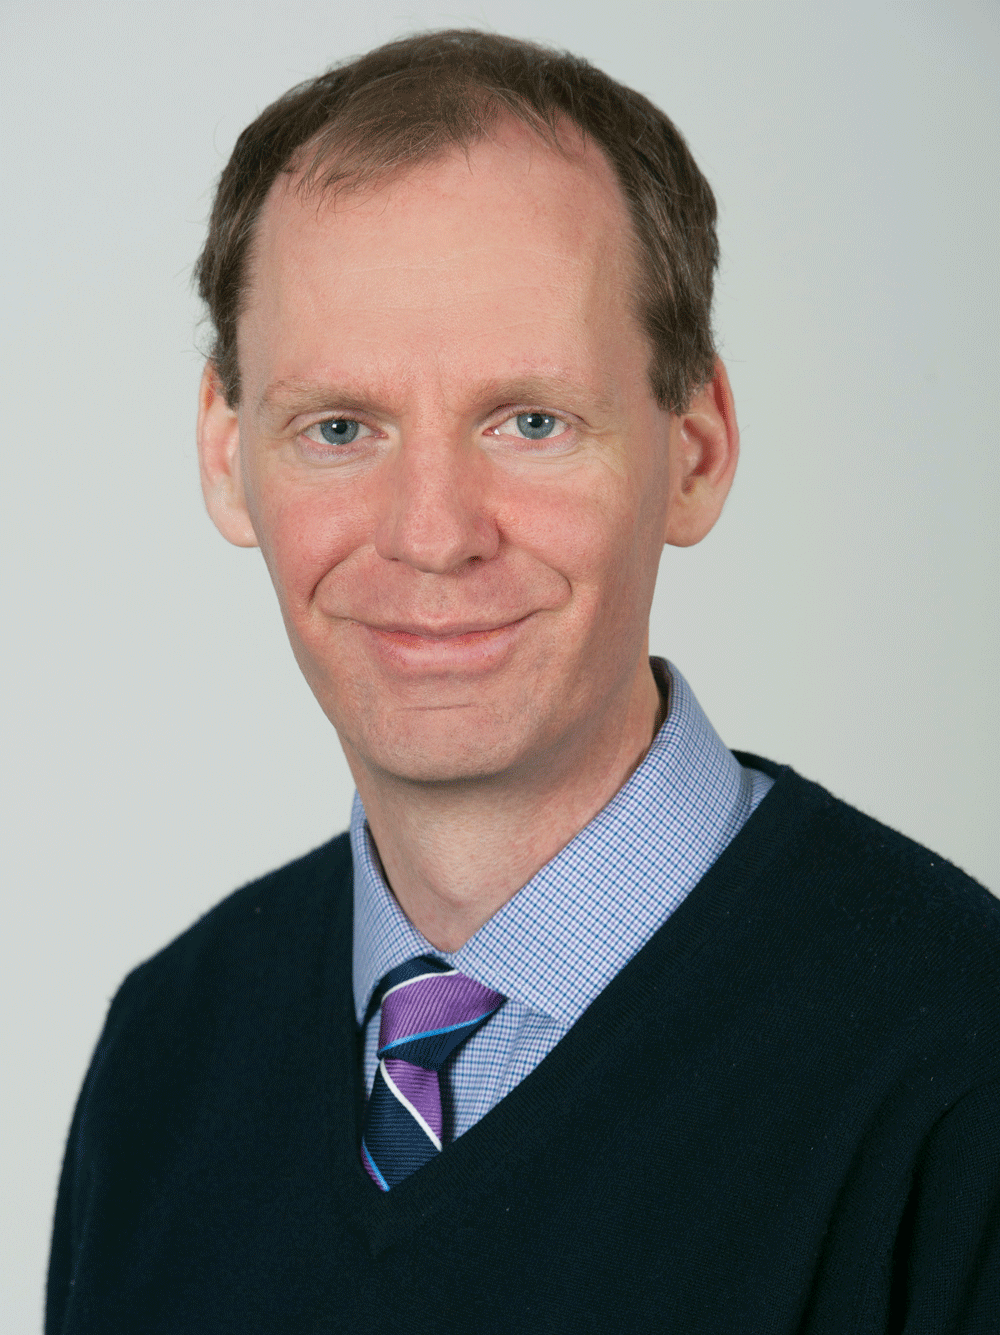 Rainer Hebert